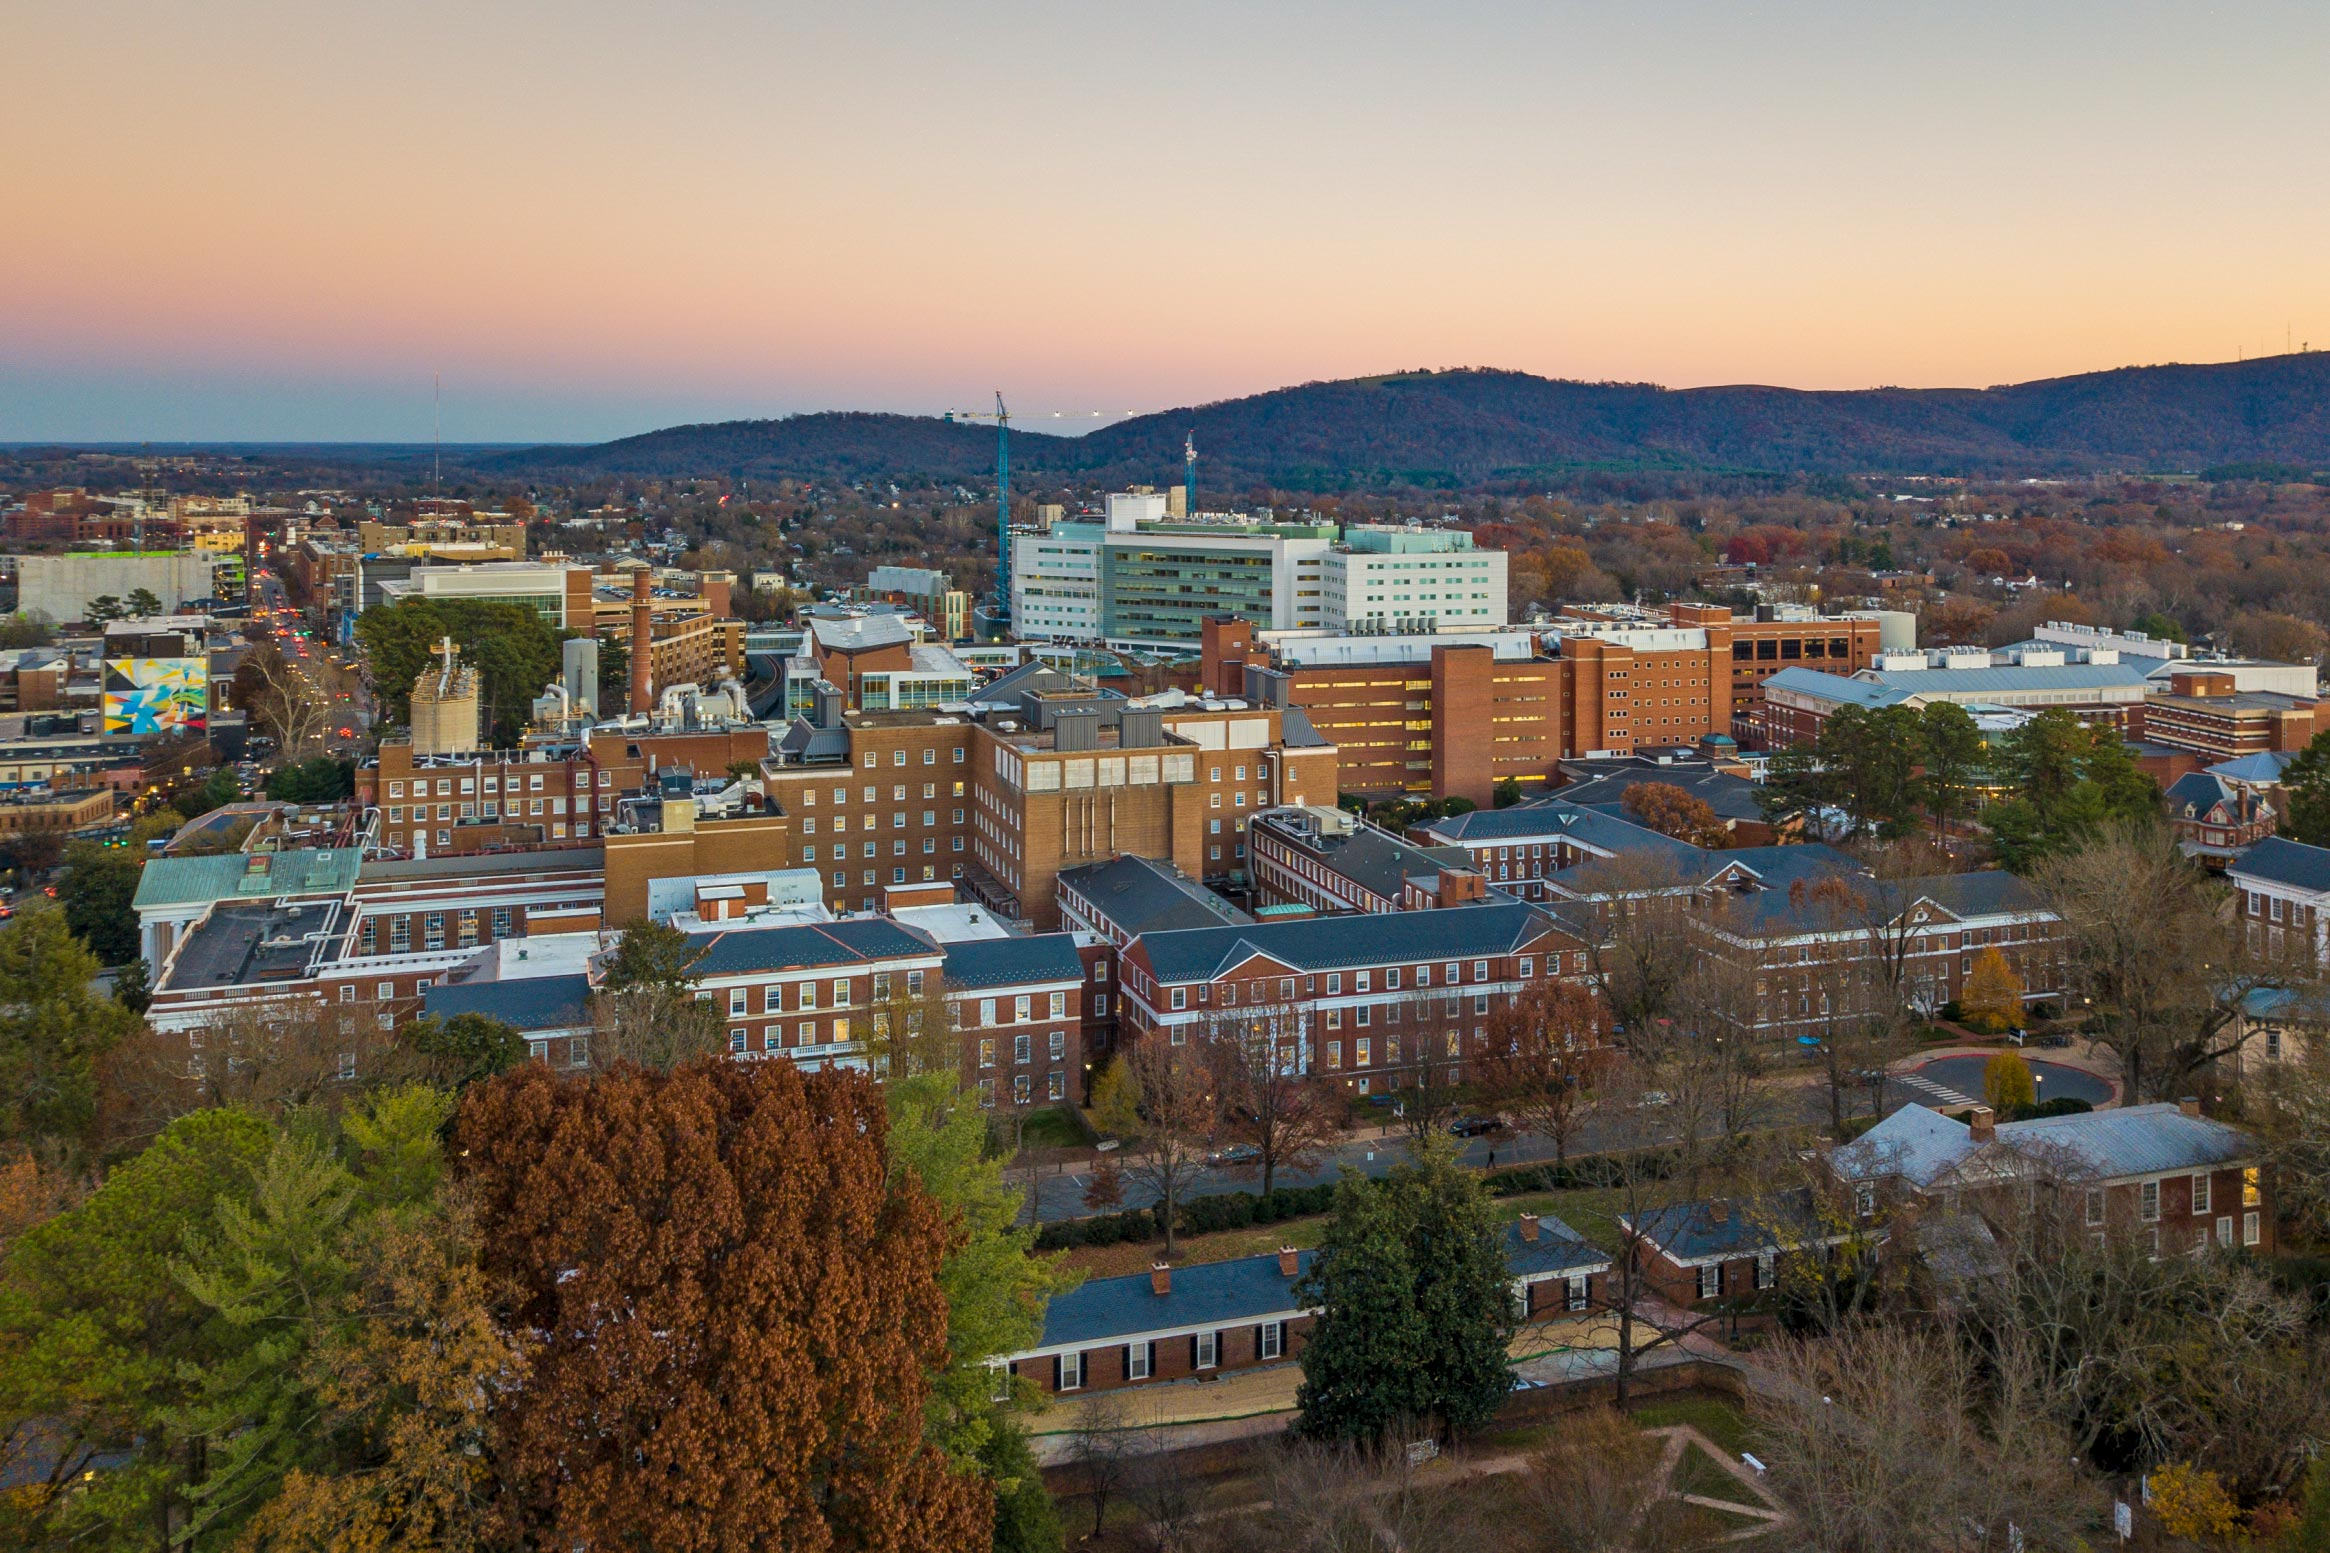 UVA Appoints Search Committee for Executive Vice President for Health Affairs